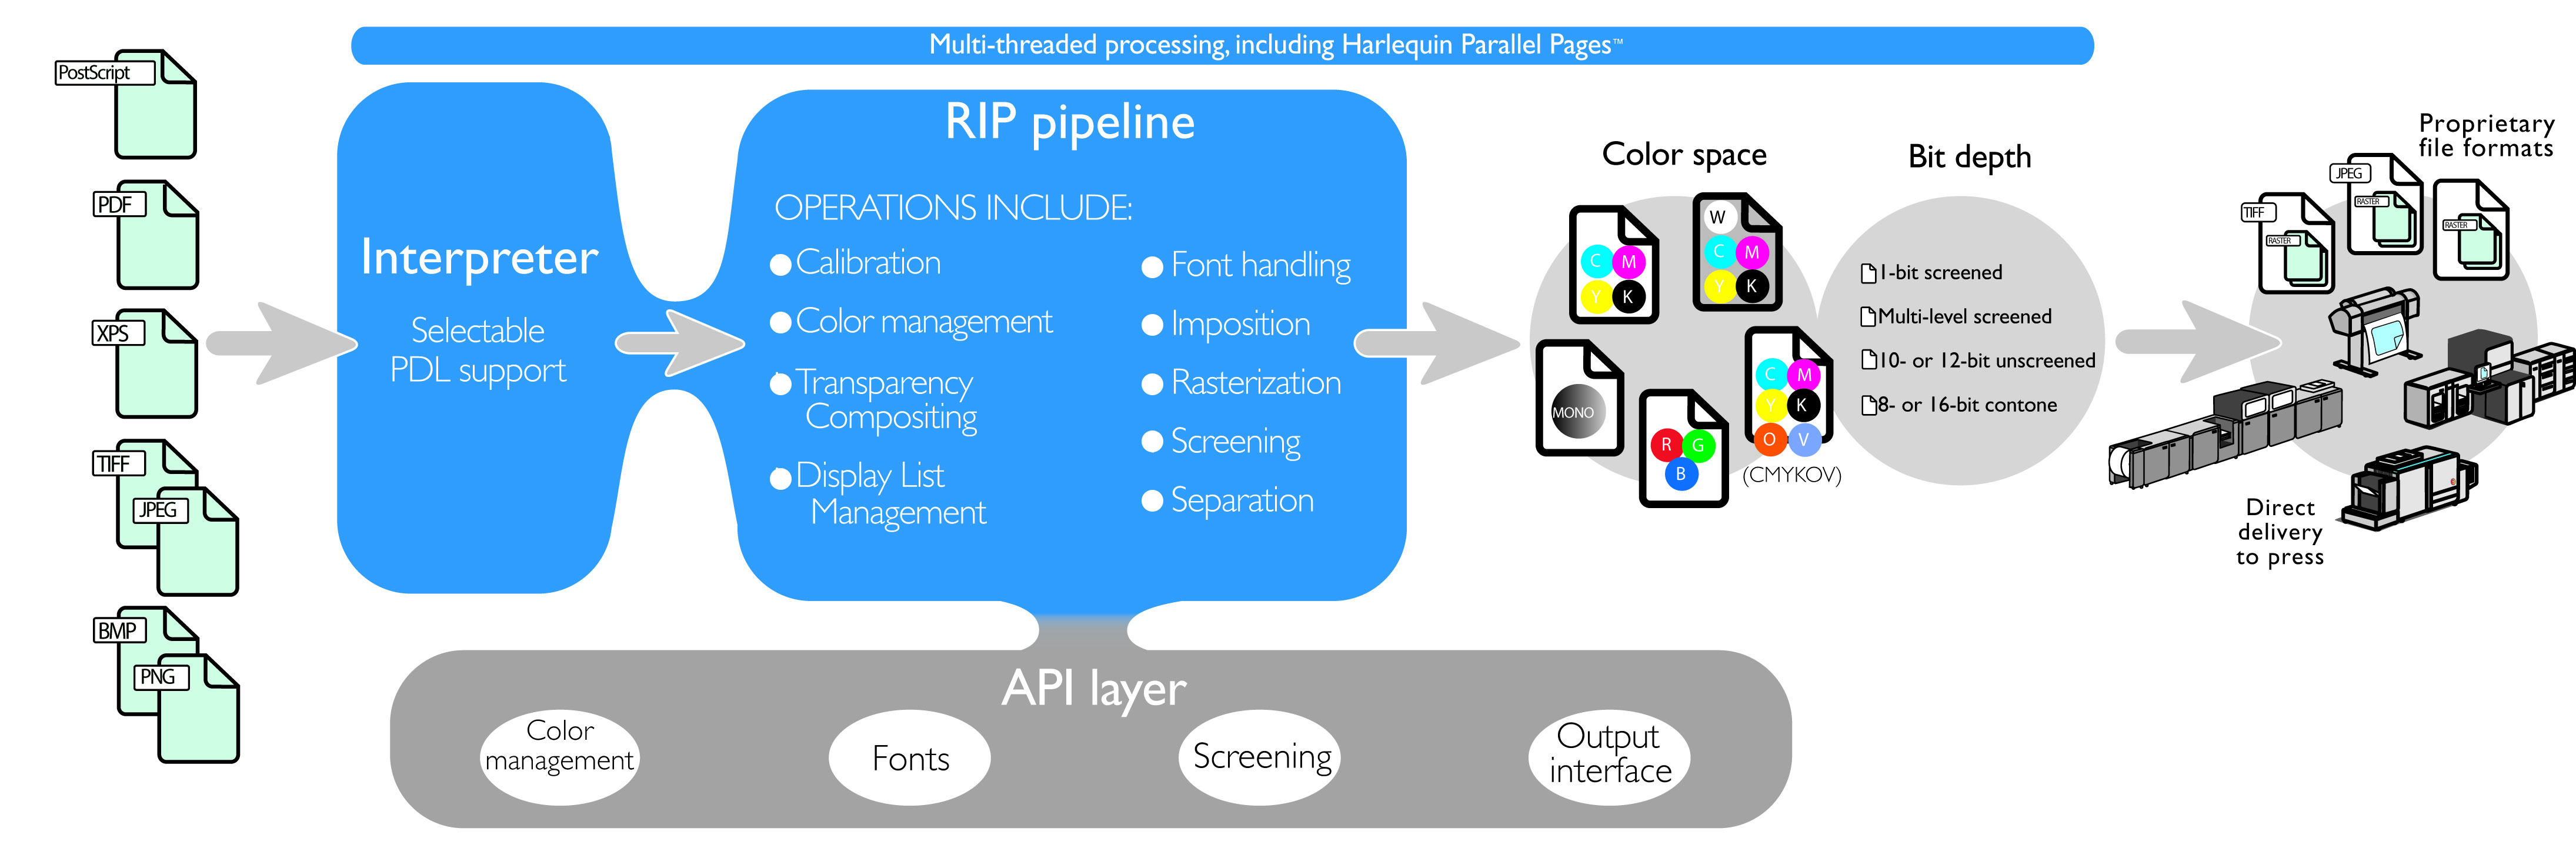 The raster image processor pipeline. The Harlequin RIP includes native interpretation of PostScript, EPS, DCS, TIFF, JPEG, PNG and BMP as well as PDF, PDF/X and PDF/VT, so whatever workflows your target market uses, it gives accurate and predictable image output time after time.